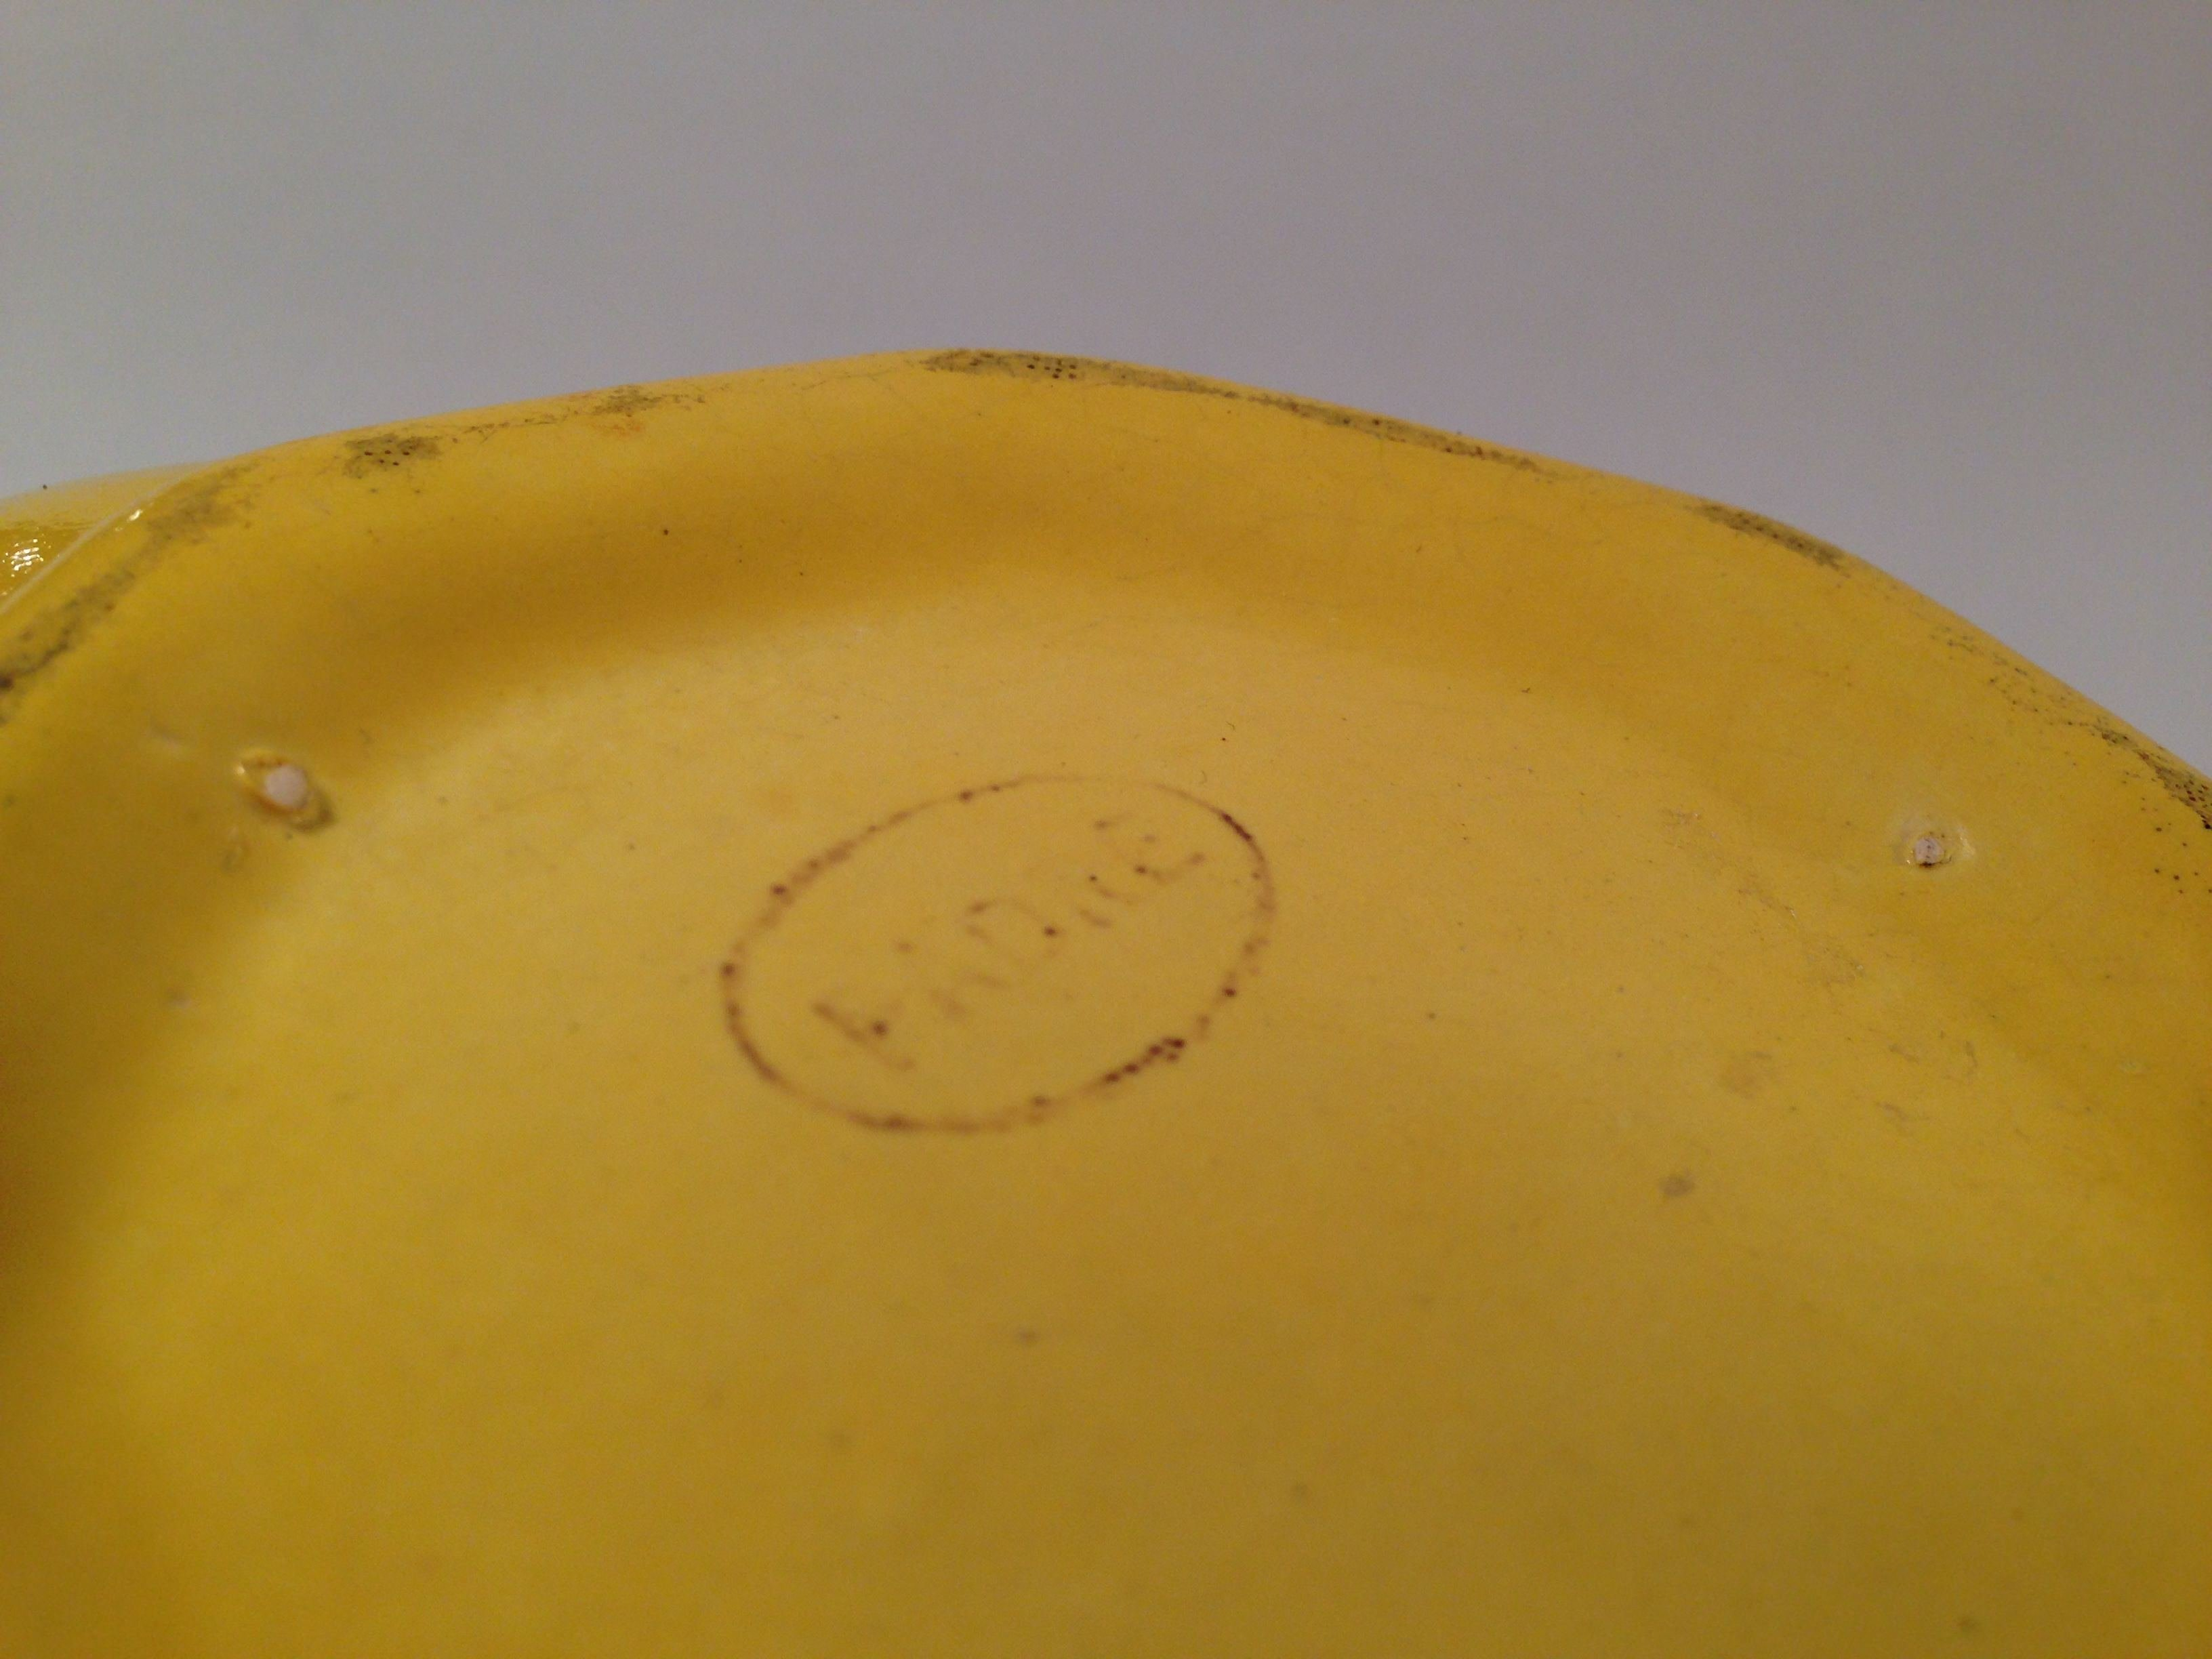 Padre stamp on bowl